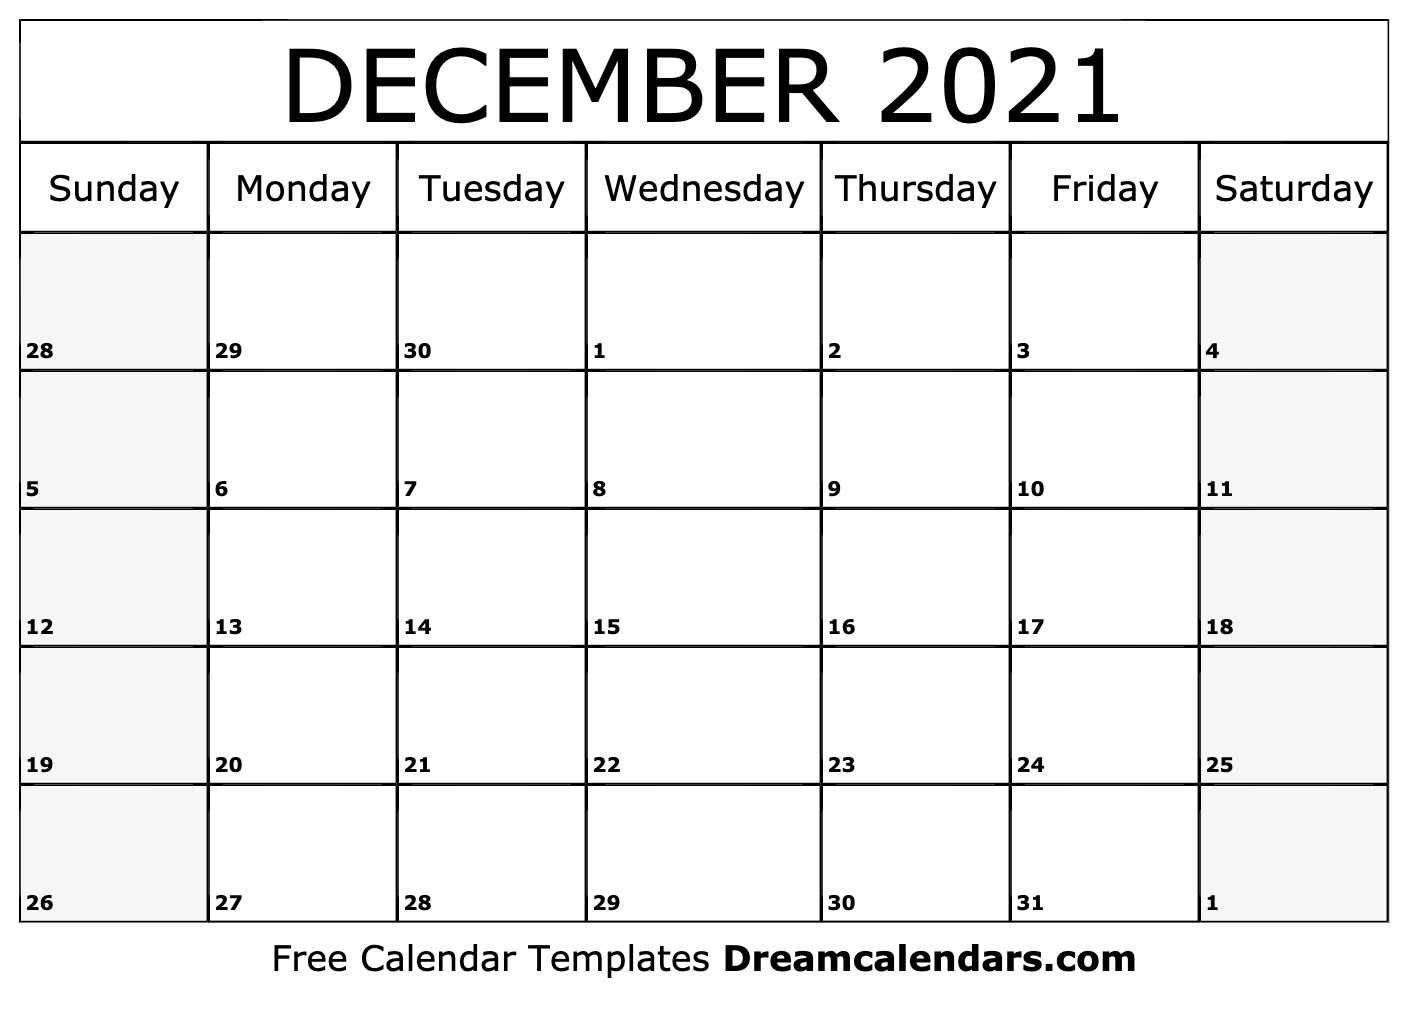 Catch December Christmas Calendar Printable 2021